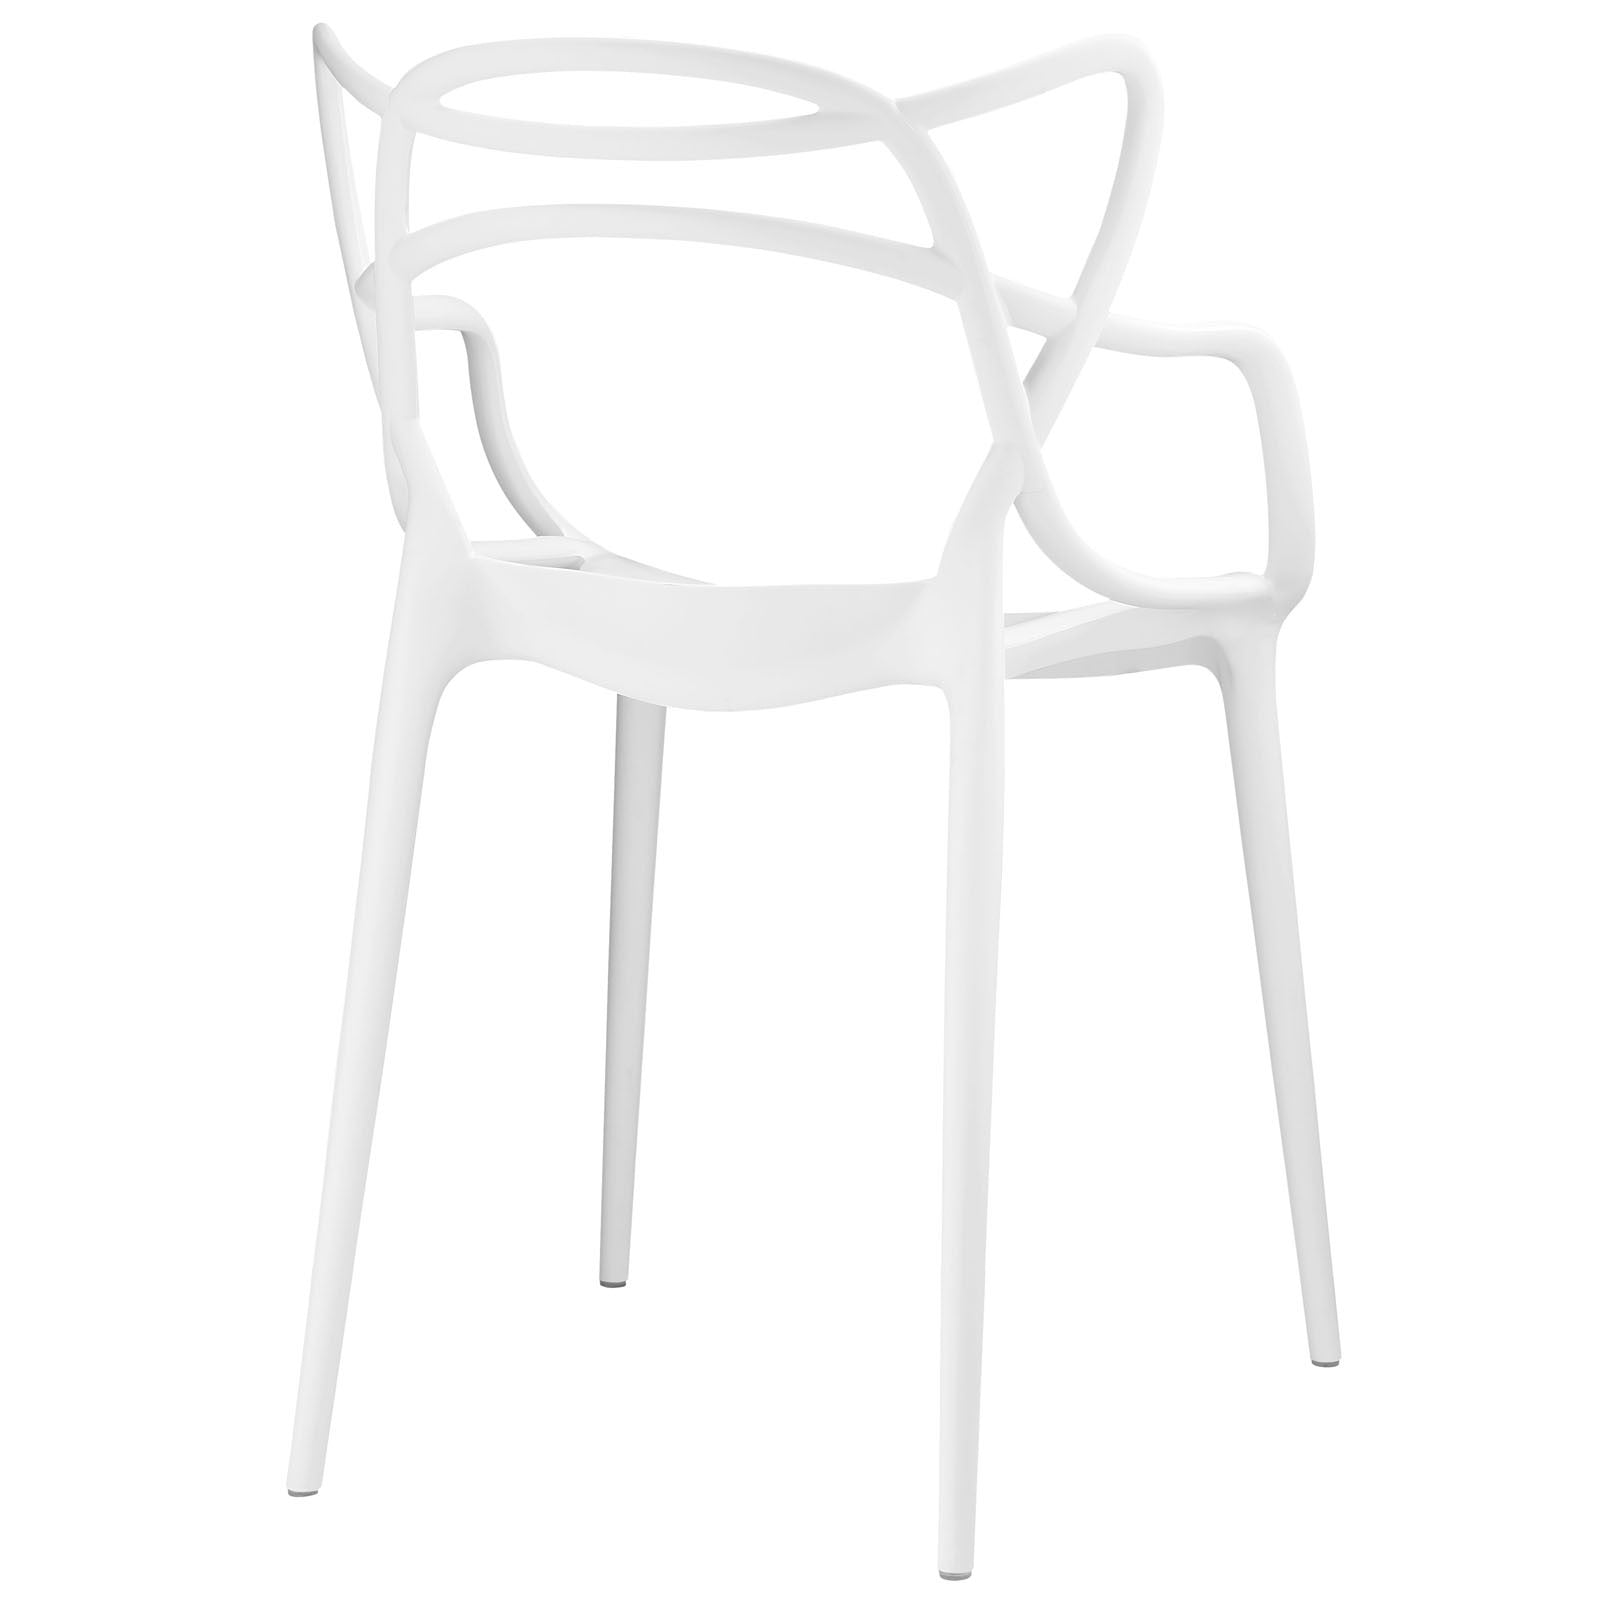 ... Philippe Starck Masters Chair Reproduction   The Modern Source   3 ...